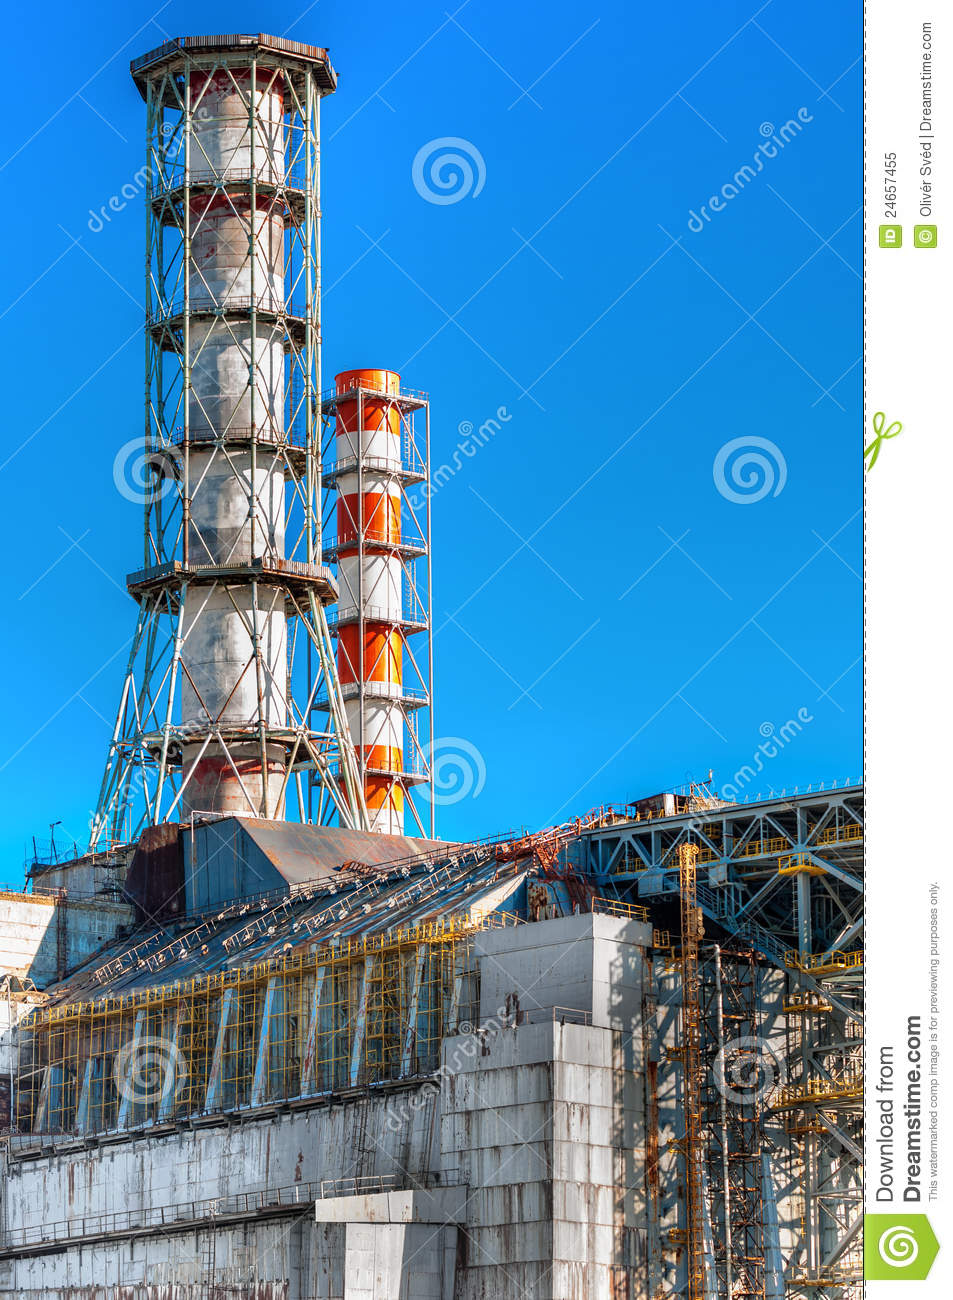 Central nuclear de Chernobyl 2012